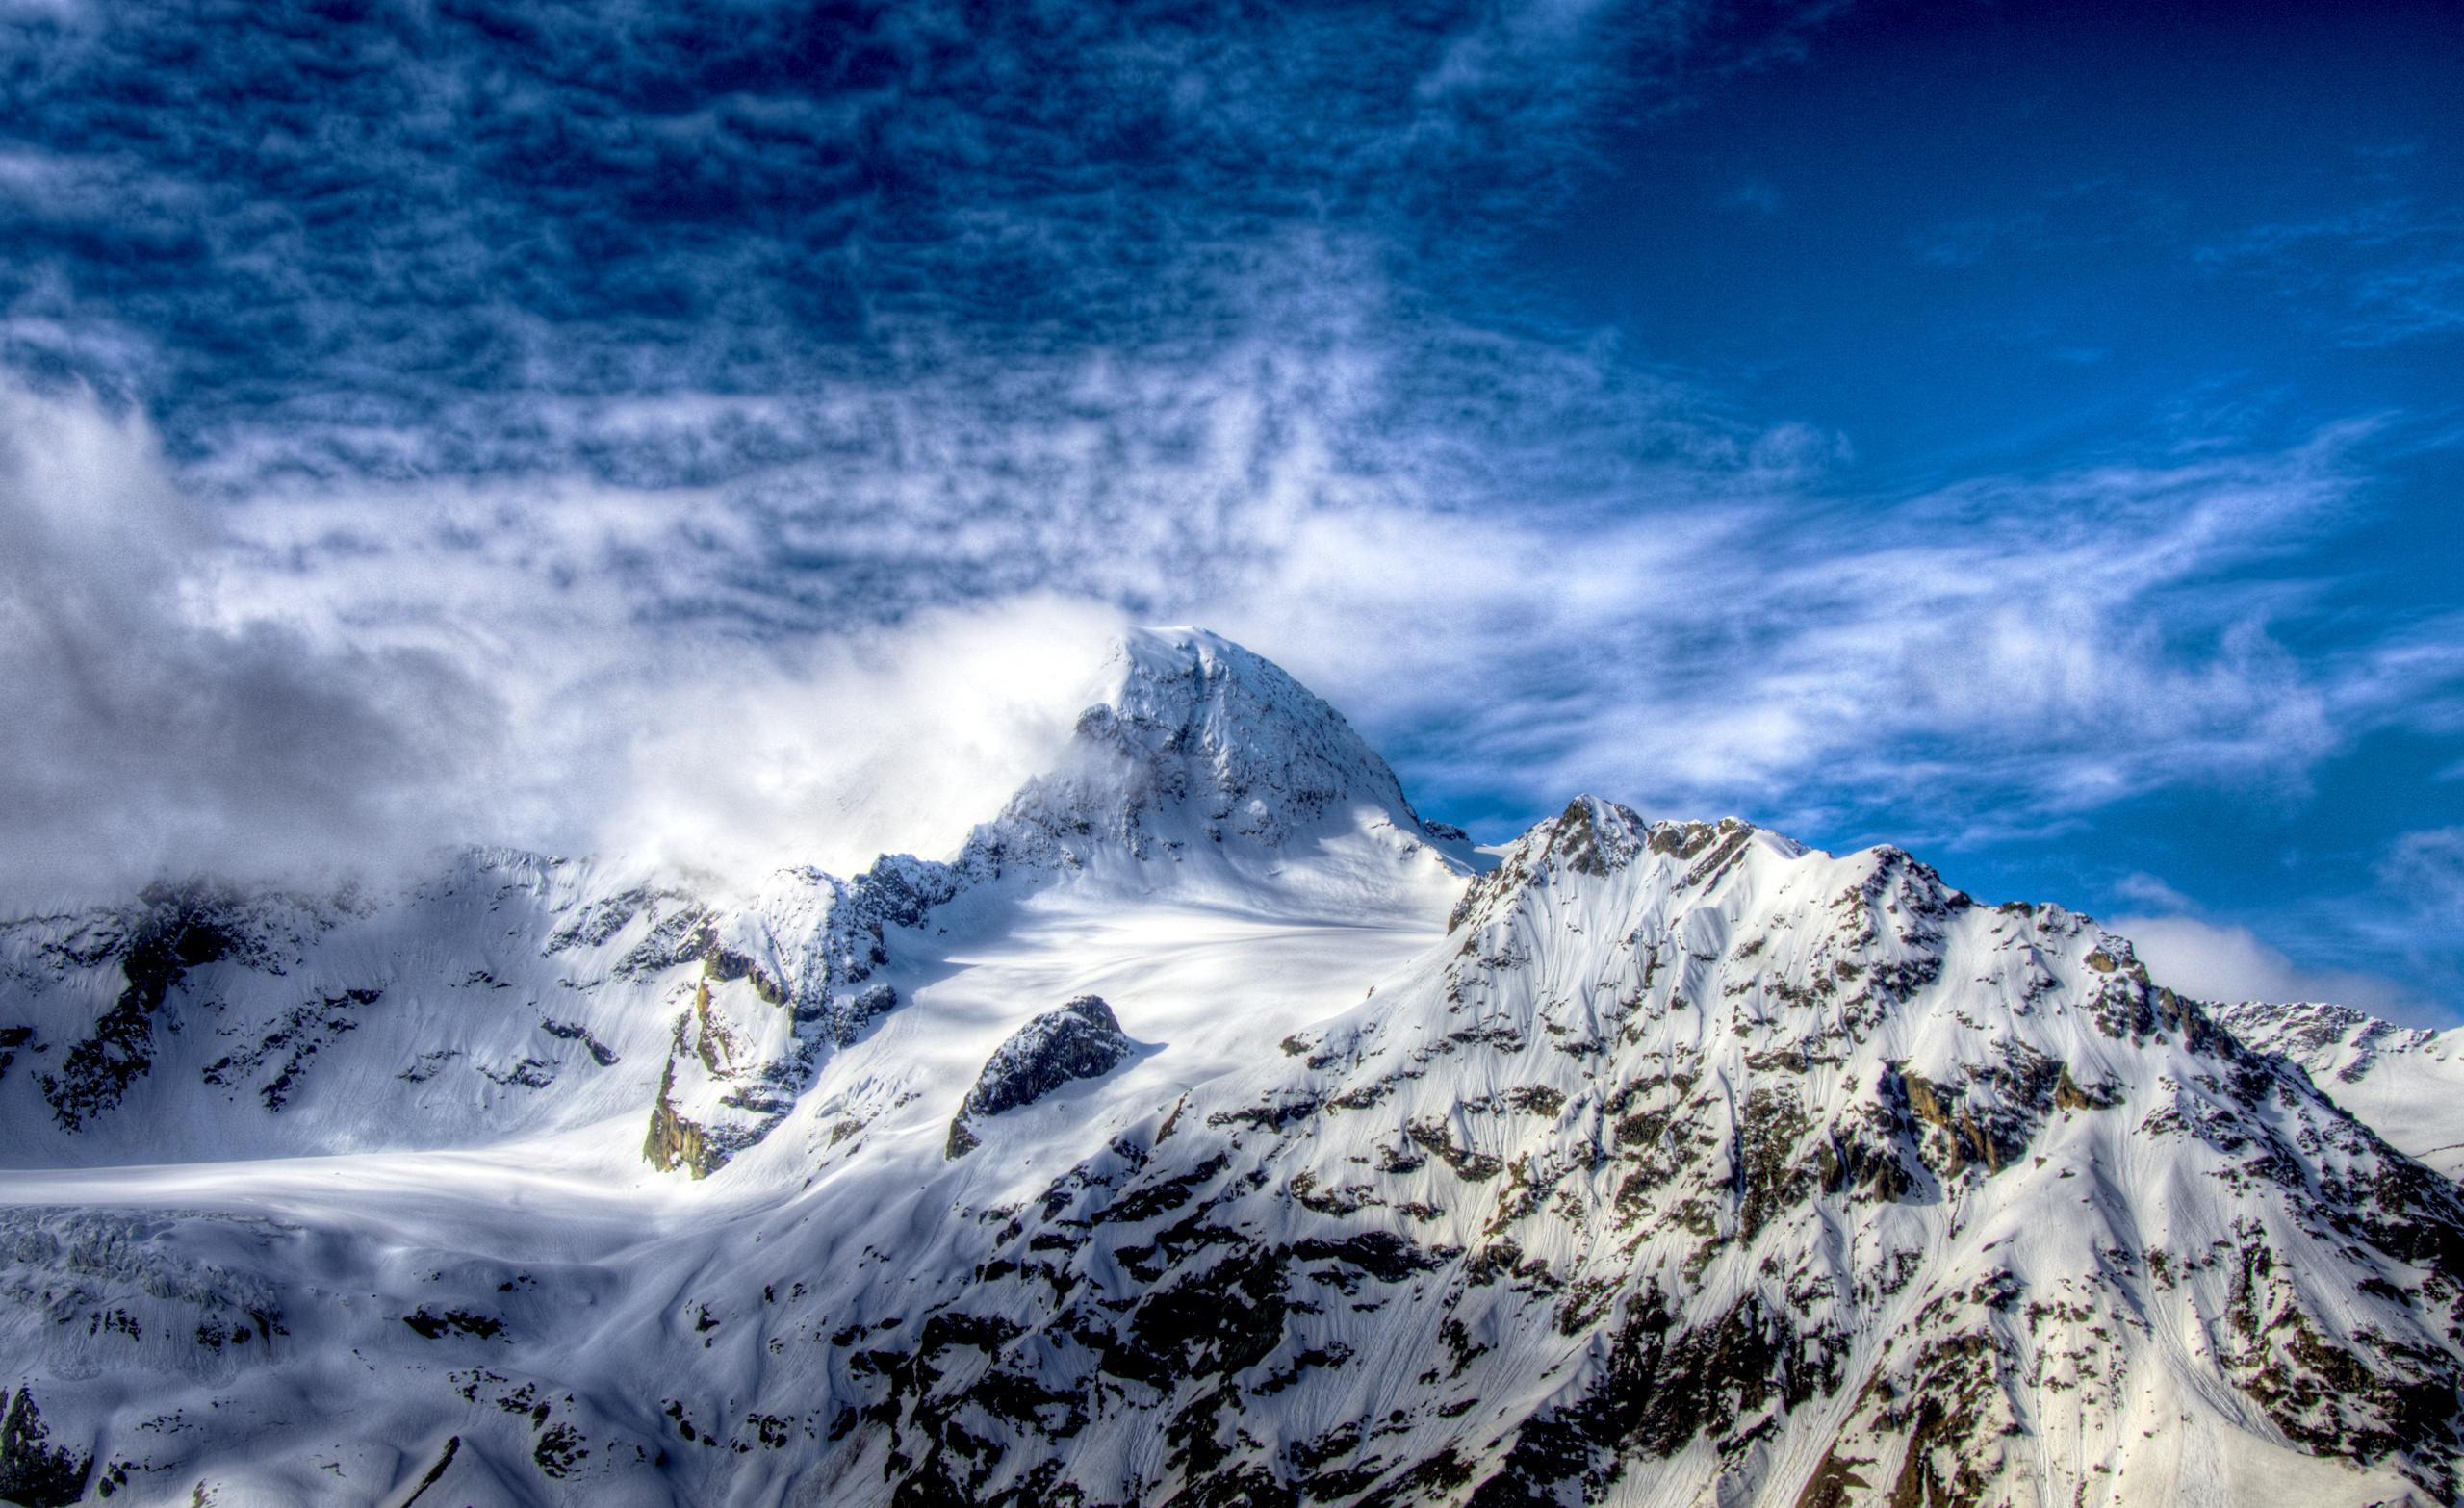 Snow Covered Mountain Peak Hd Wallpaper Wallpaper List 2560x1567